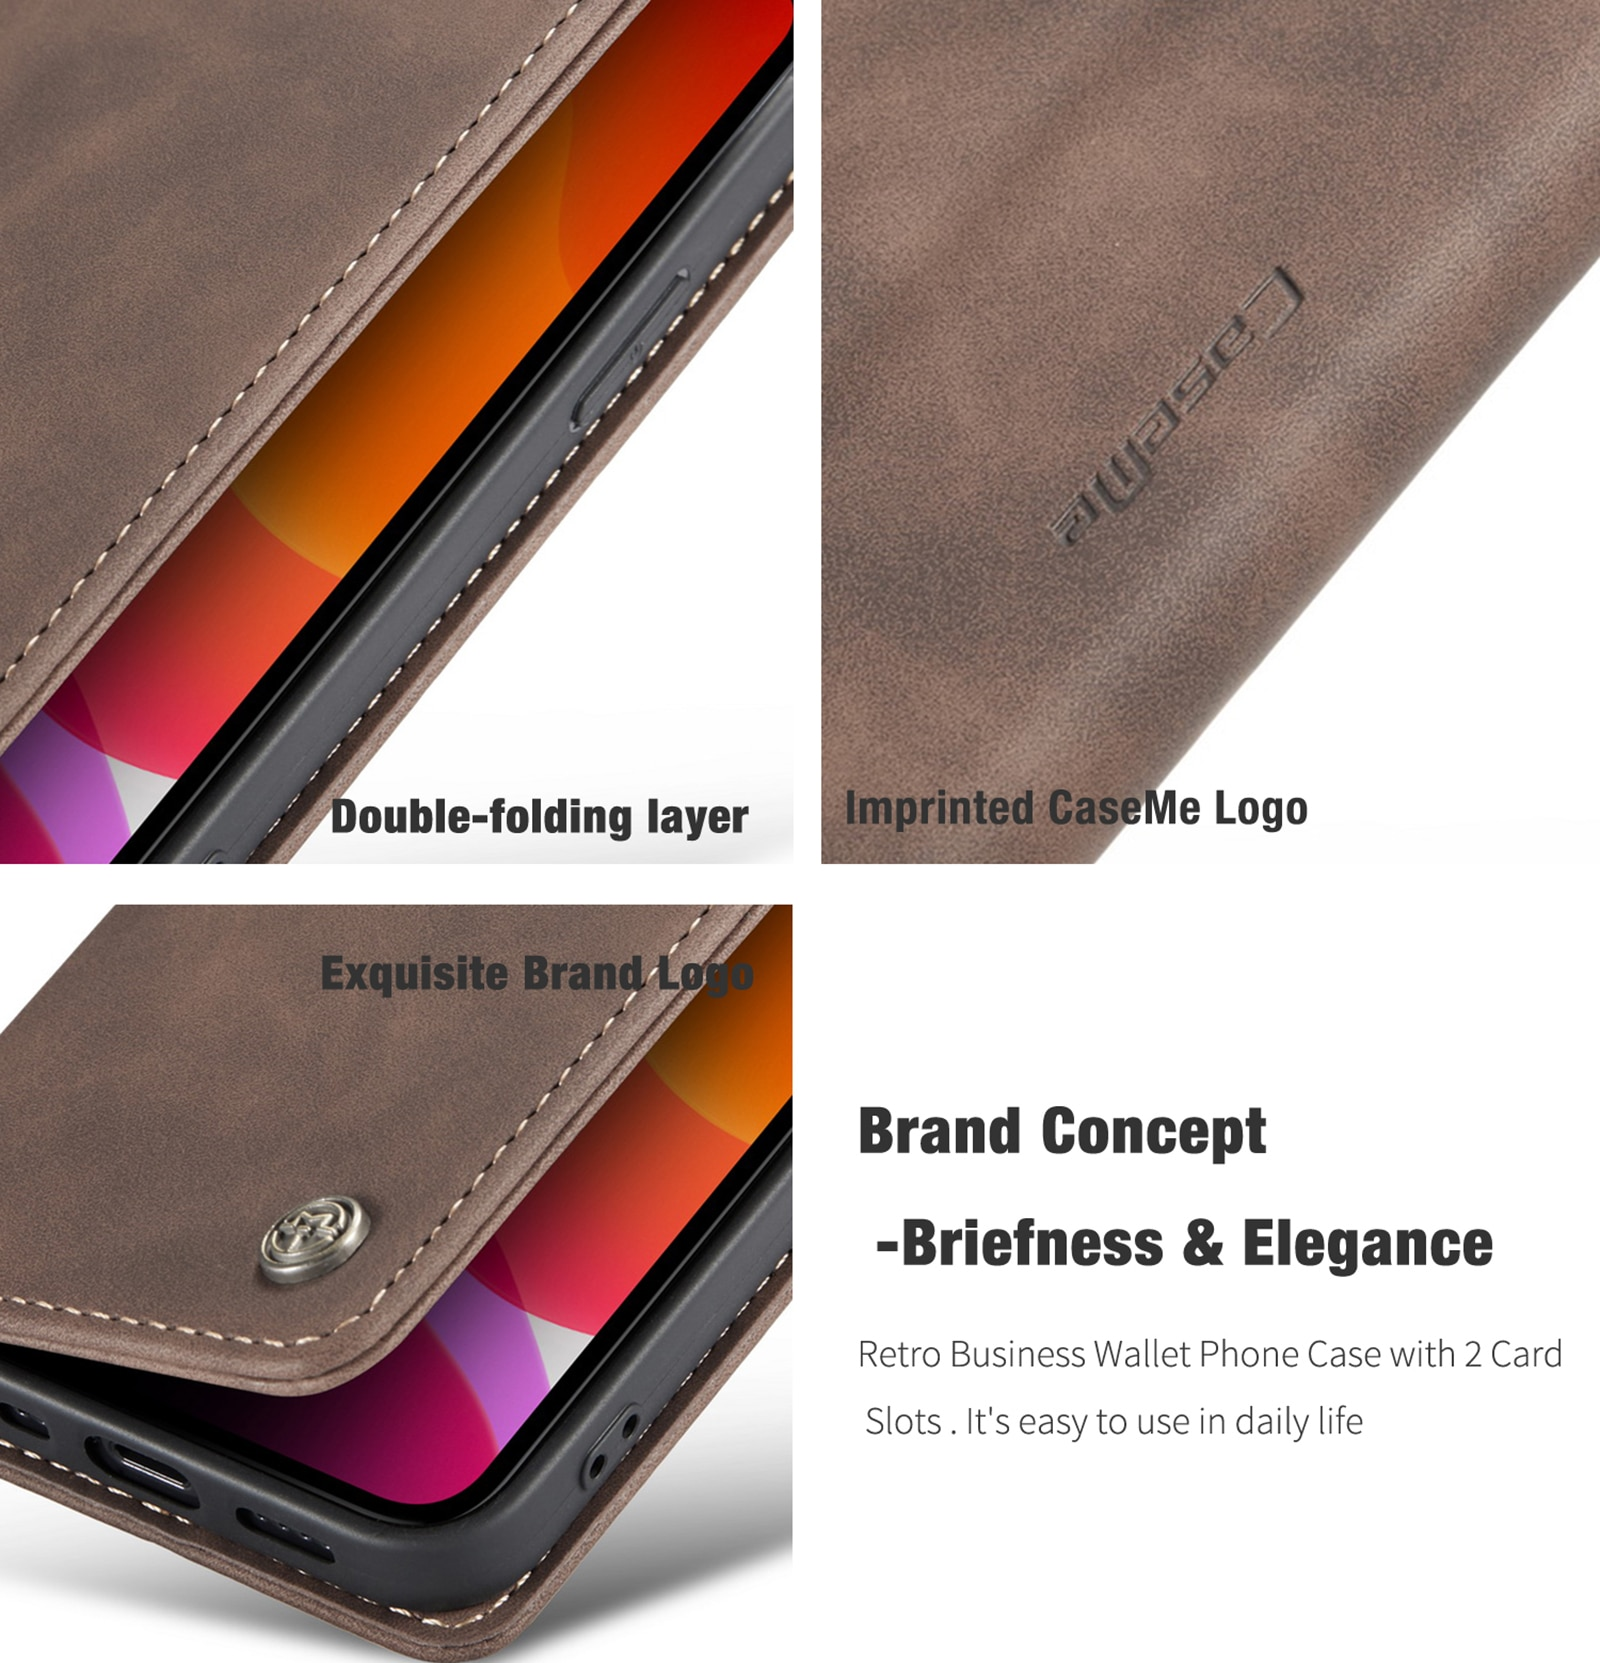 Hc721b3e8ea4c40b3aeb485a9a5efba87g - Magnetic Leather Flip Case For iPhone 12 / Pro / Pro Max PU Leather Fitted Bumper Soft Retro Flip Case Book Wallet Cover